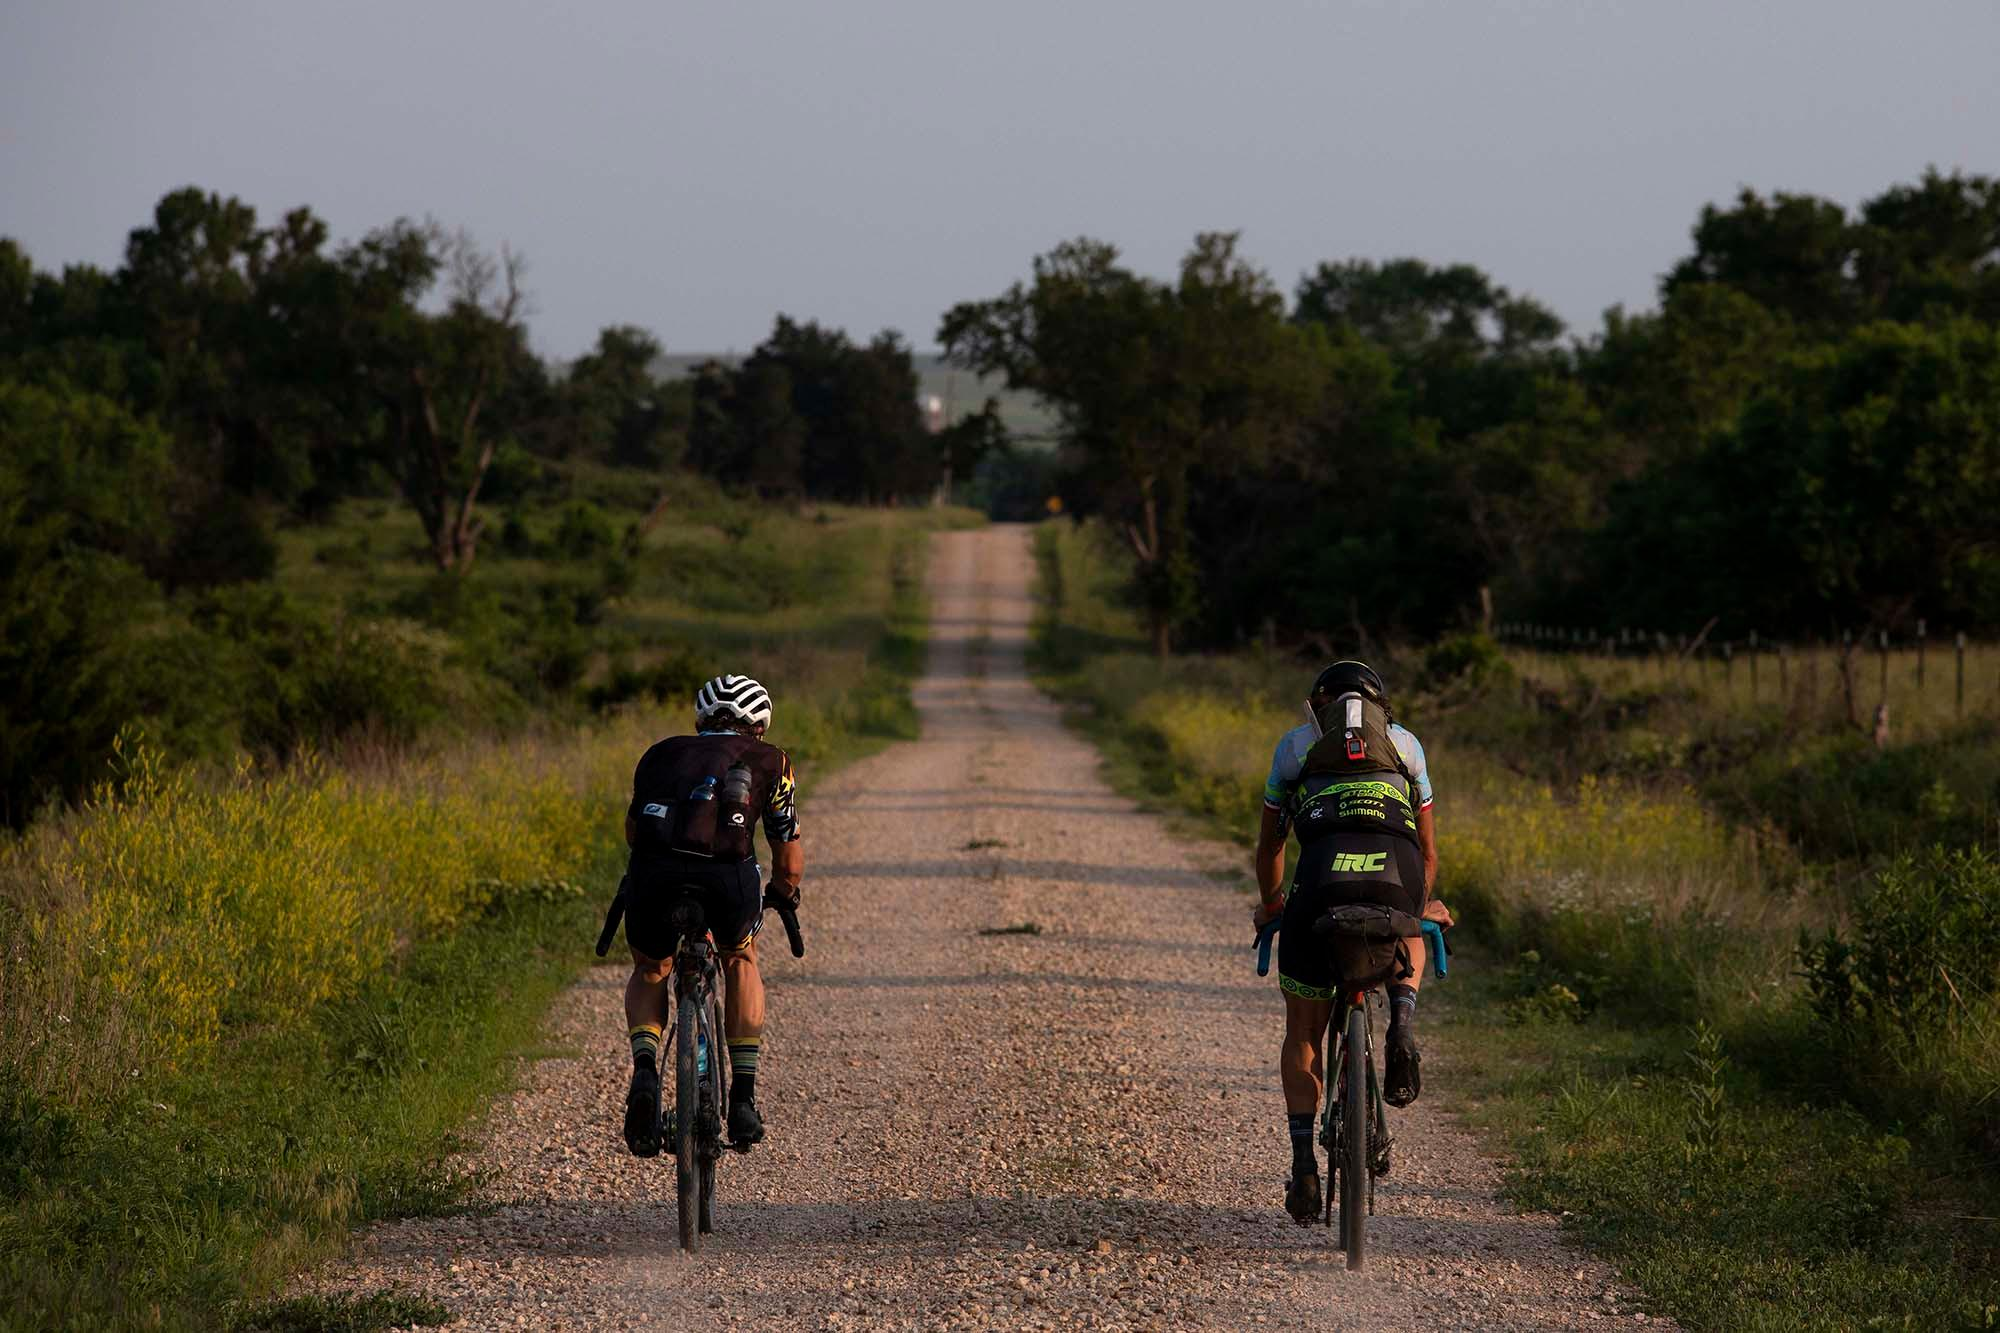 Jay Petervary and Jake Wells ride the Dirty Kanza XL. Petervary placed first with a time of 22:31:41. The course this year was 339 miles with rerouting to avoid mud. (Rugile Kaladyte)